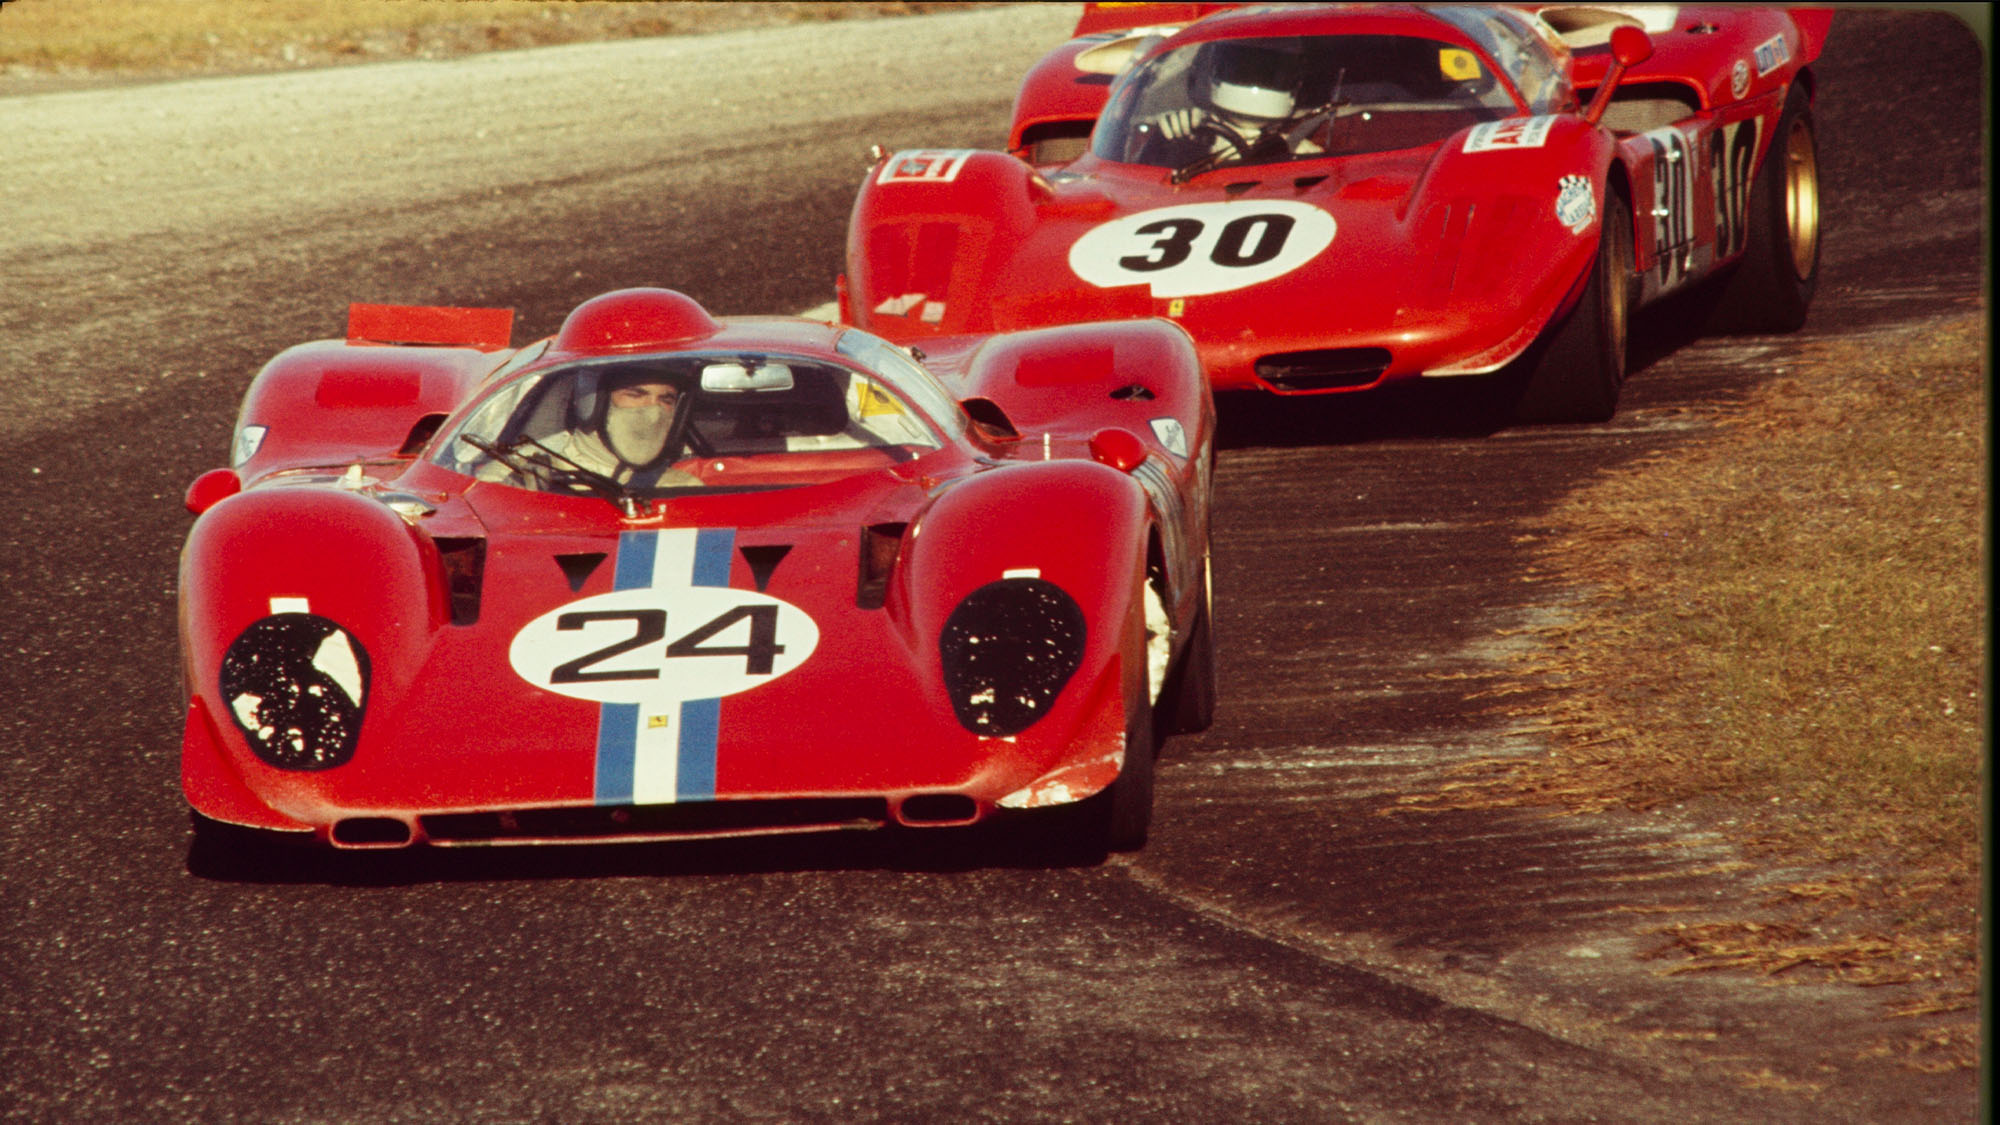 UNITED STATES - FEBRUARY 02: 1970 Daytona 24 Hour Race. Sam Posey and Mike Parkes(24) of N.A.R.T (North American Racing Team) drive their Ferrari 312P in front of Corrado Manfredini and Gianpiero Moretti(30) in the Ferrari 512S. (Photo by /The Enthusiast Network via Getty Images/Getty Images)